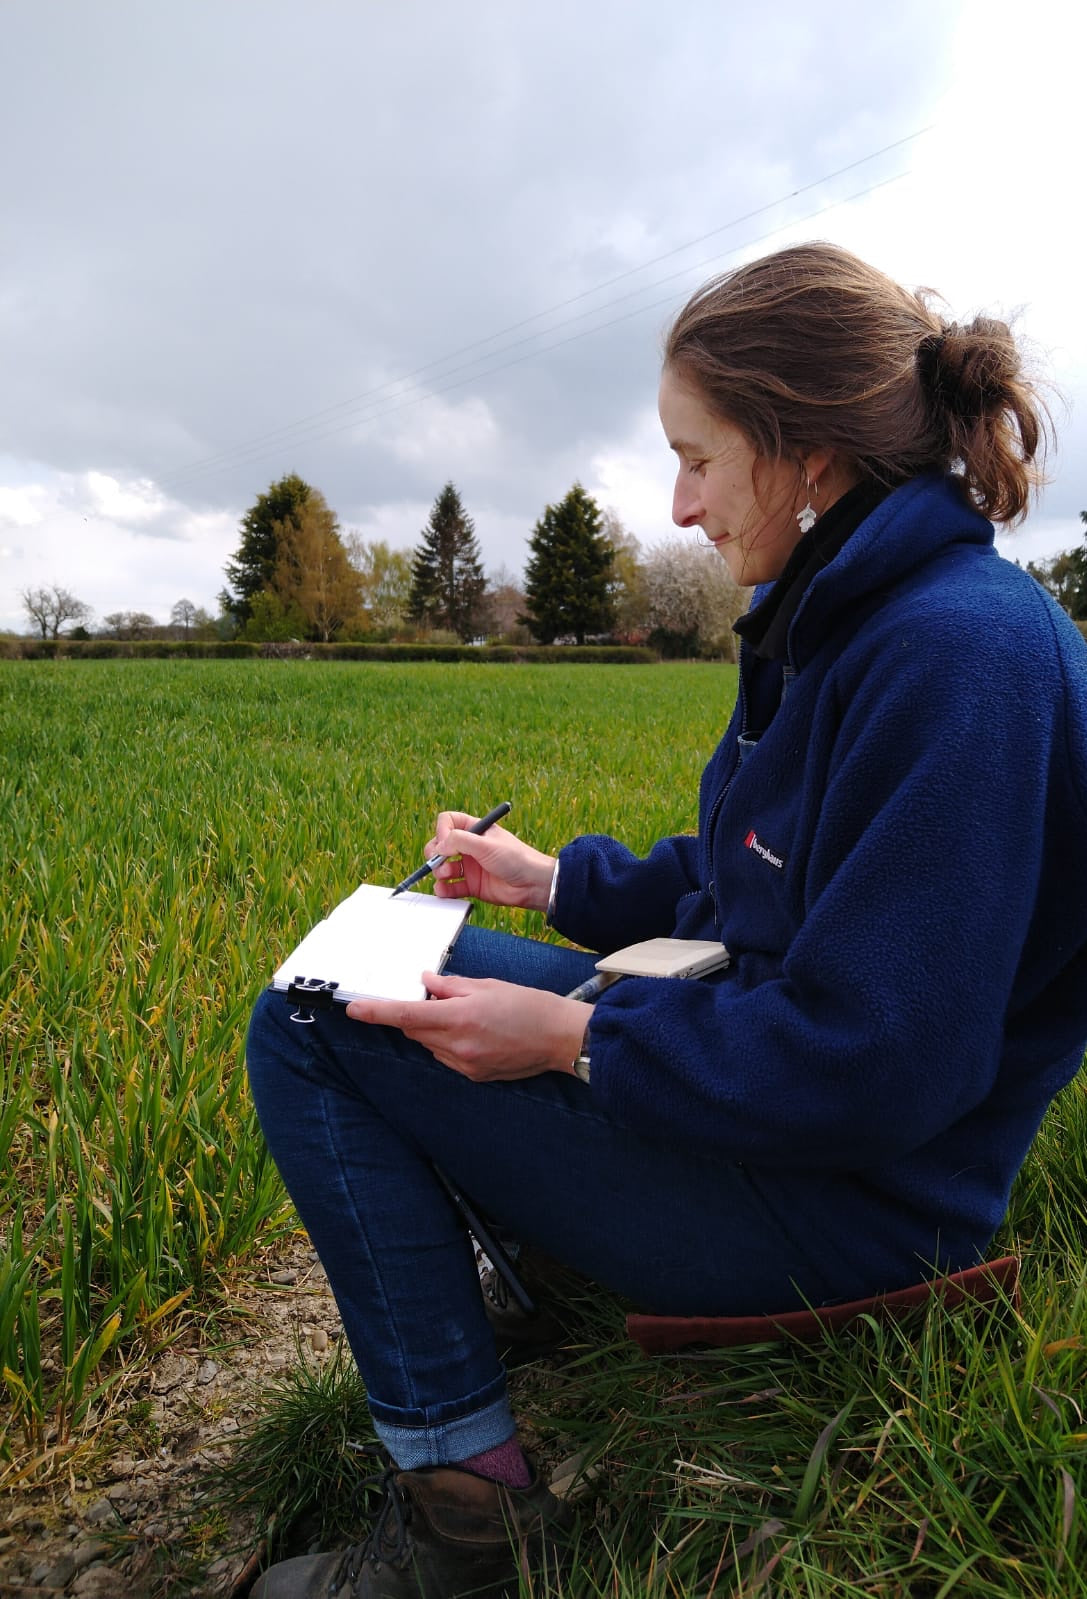 Alice Draws the Line sketching on a field edge